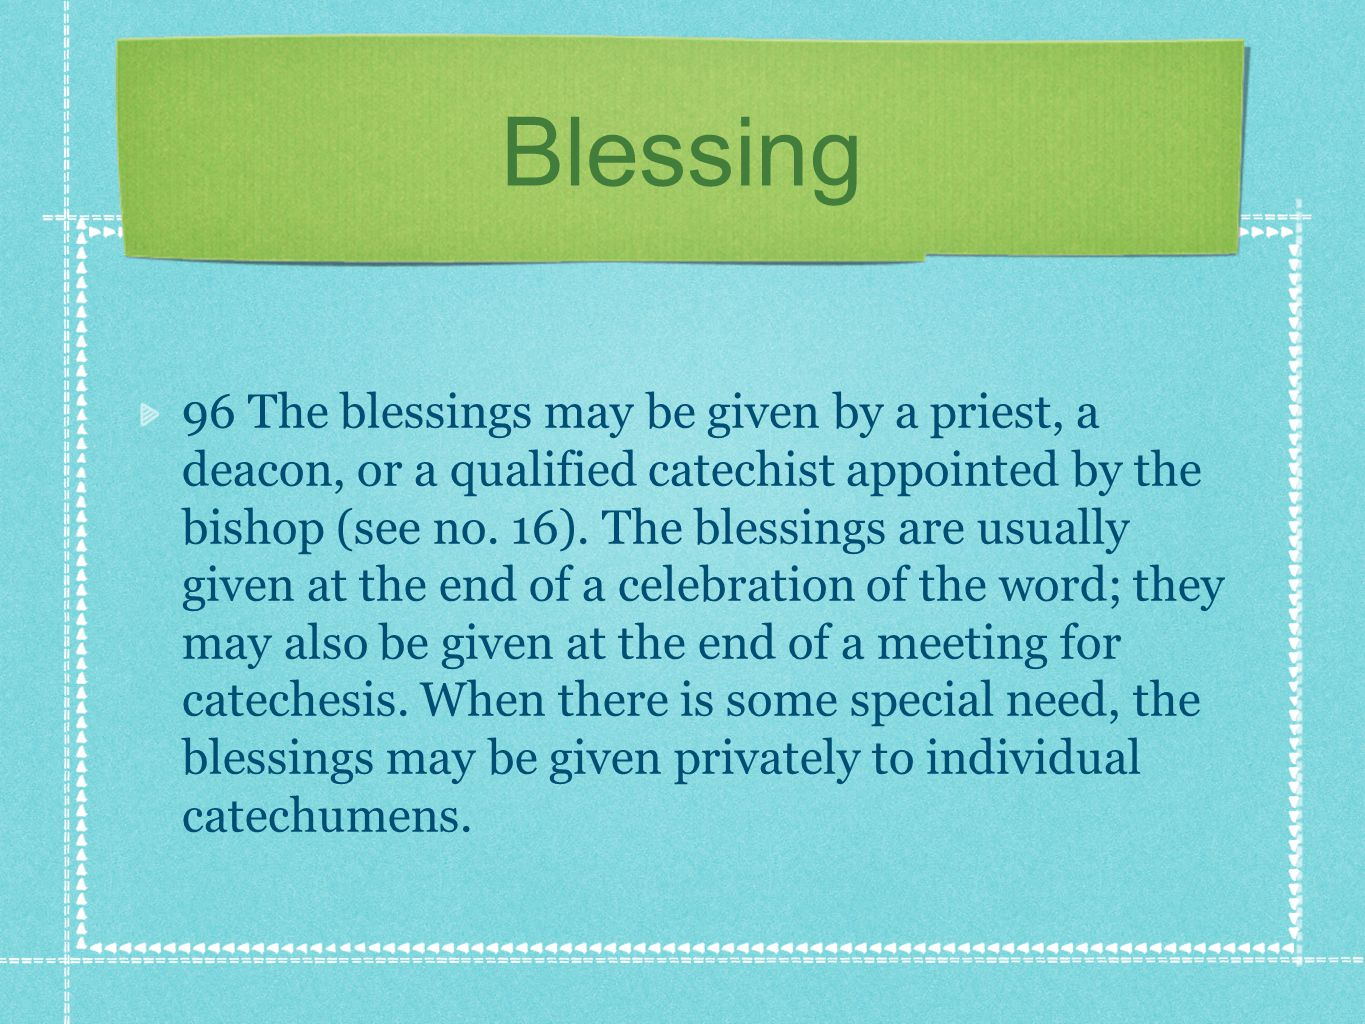 Blessing 96 The blessings may be given by a priest, a deacon, or a qualified catechist appointed by the bishop (see no.